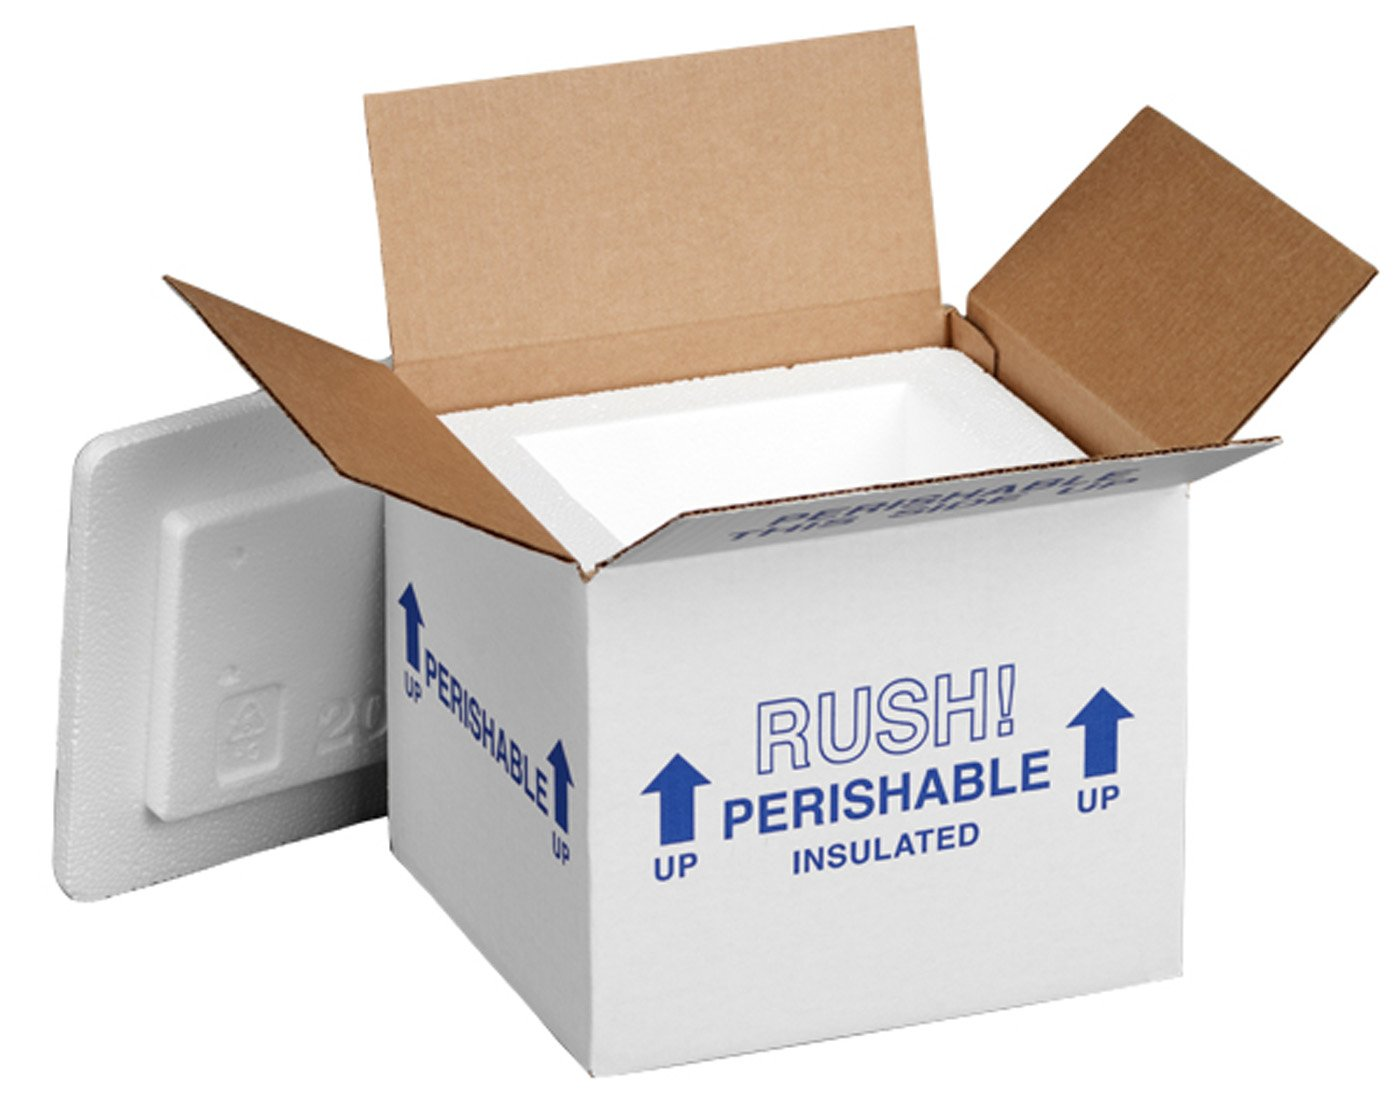 "Polar Tech 205C Thermo Chill Insulated Carton with Foam Shipper, Small, 6"" Length x 5"" Width x 6-1/2"" Depth (Case of 2)"